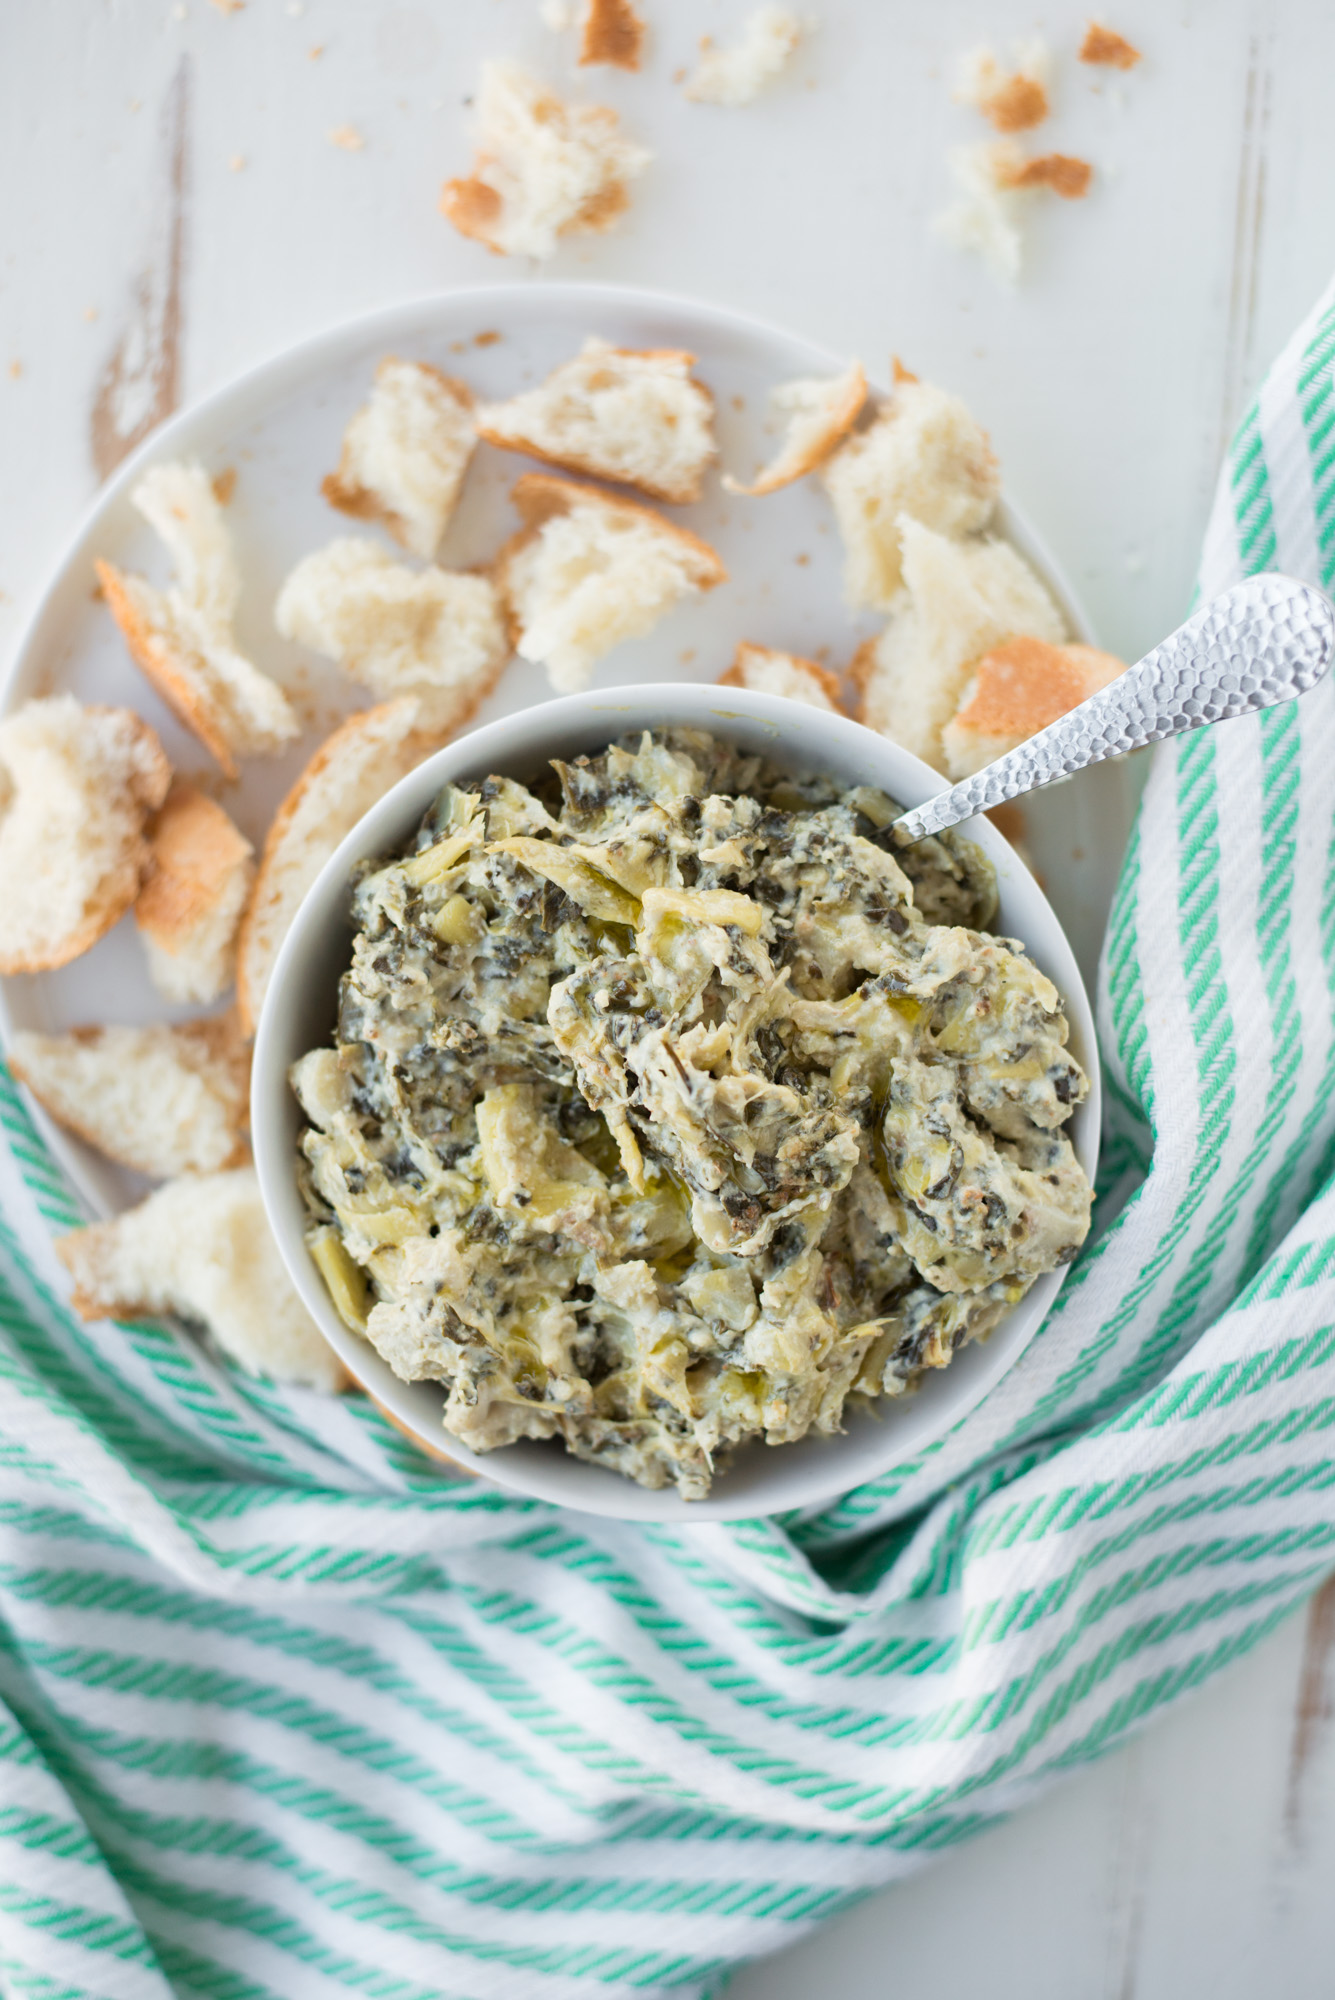 Rich, creamy, and oh-so delicious, Slow Cooker Spinach Artichoke Dip (Dairy-Free, Gluten-Free) will be the hit of your next party or gathering! #realfoodwholelife #healthy #recipe #realfood #cleaneating #glutenfree #dairyfree #soyfree #grainfree #paleo #whole30 #instantpot #crockpot #vegetarian #vegan